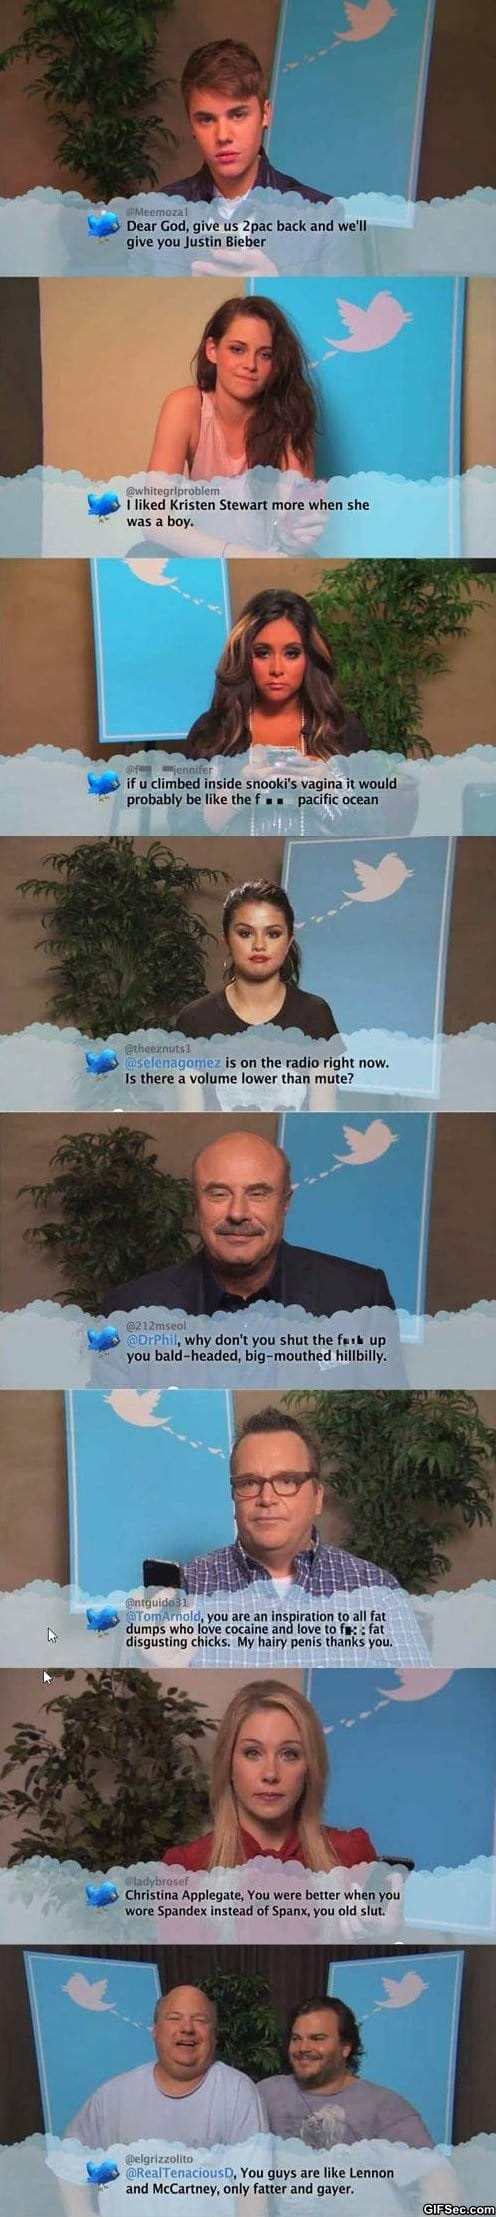 LOL - Celebrities read mean tweets about them